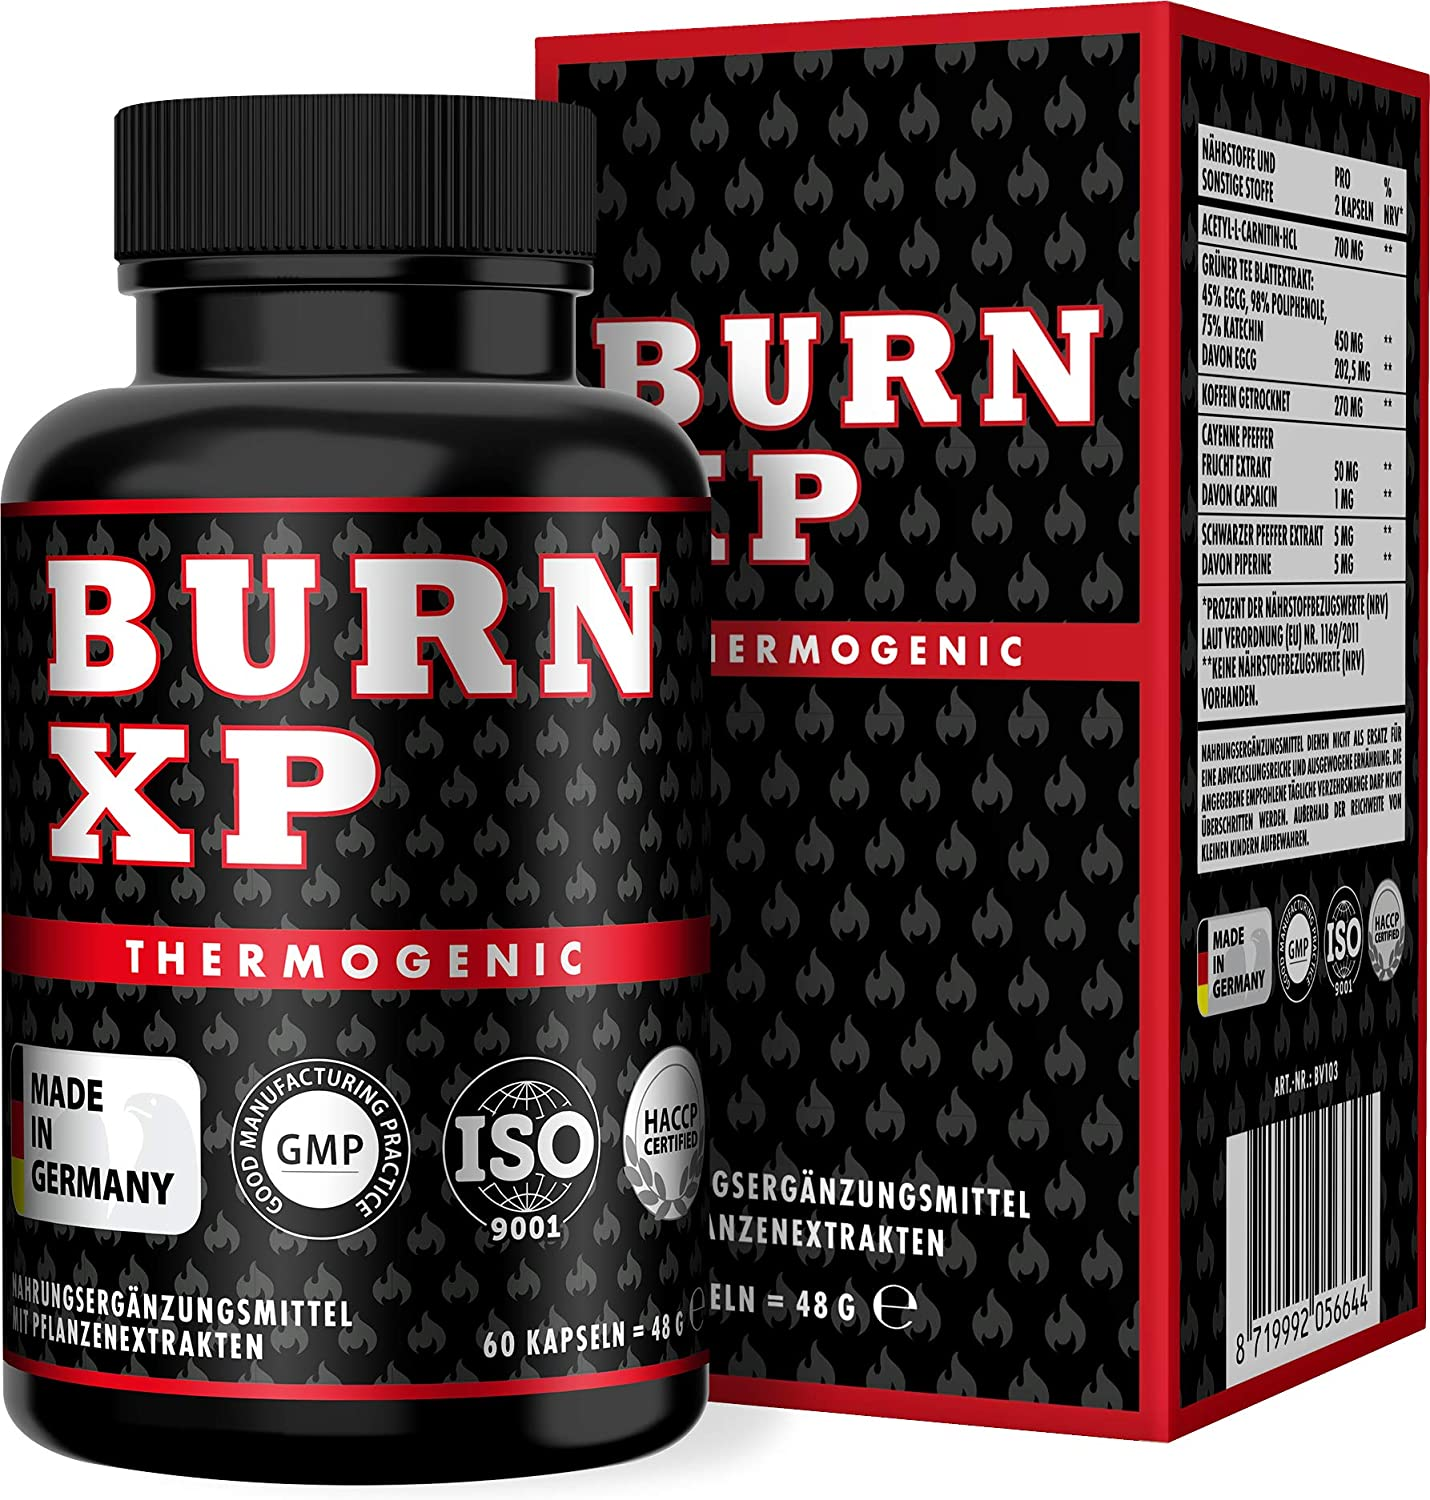 BURN XP - Thermogener Burner